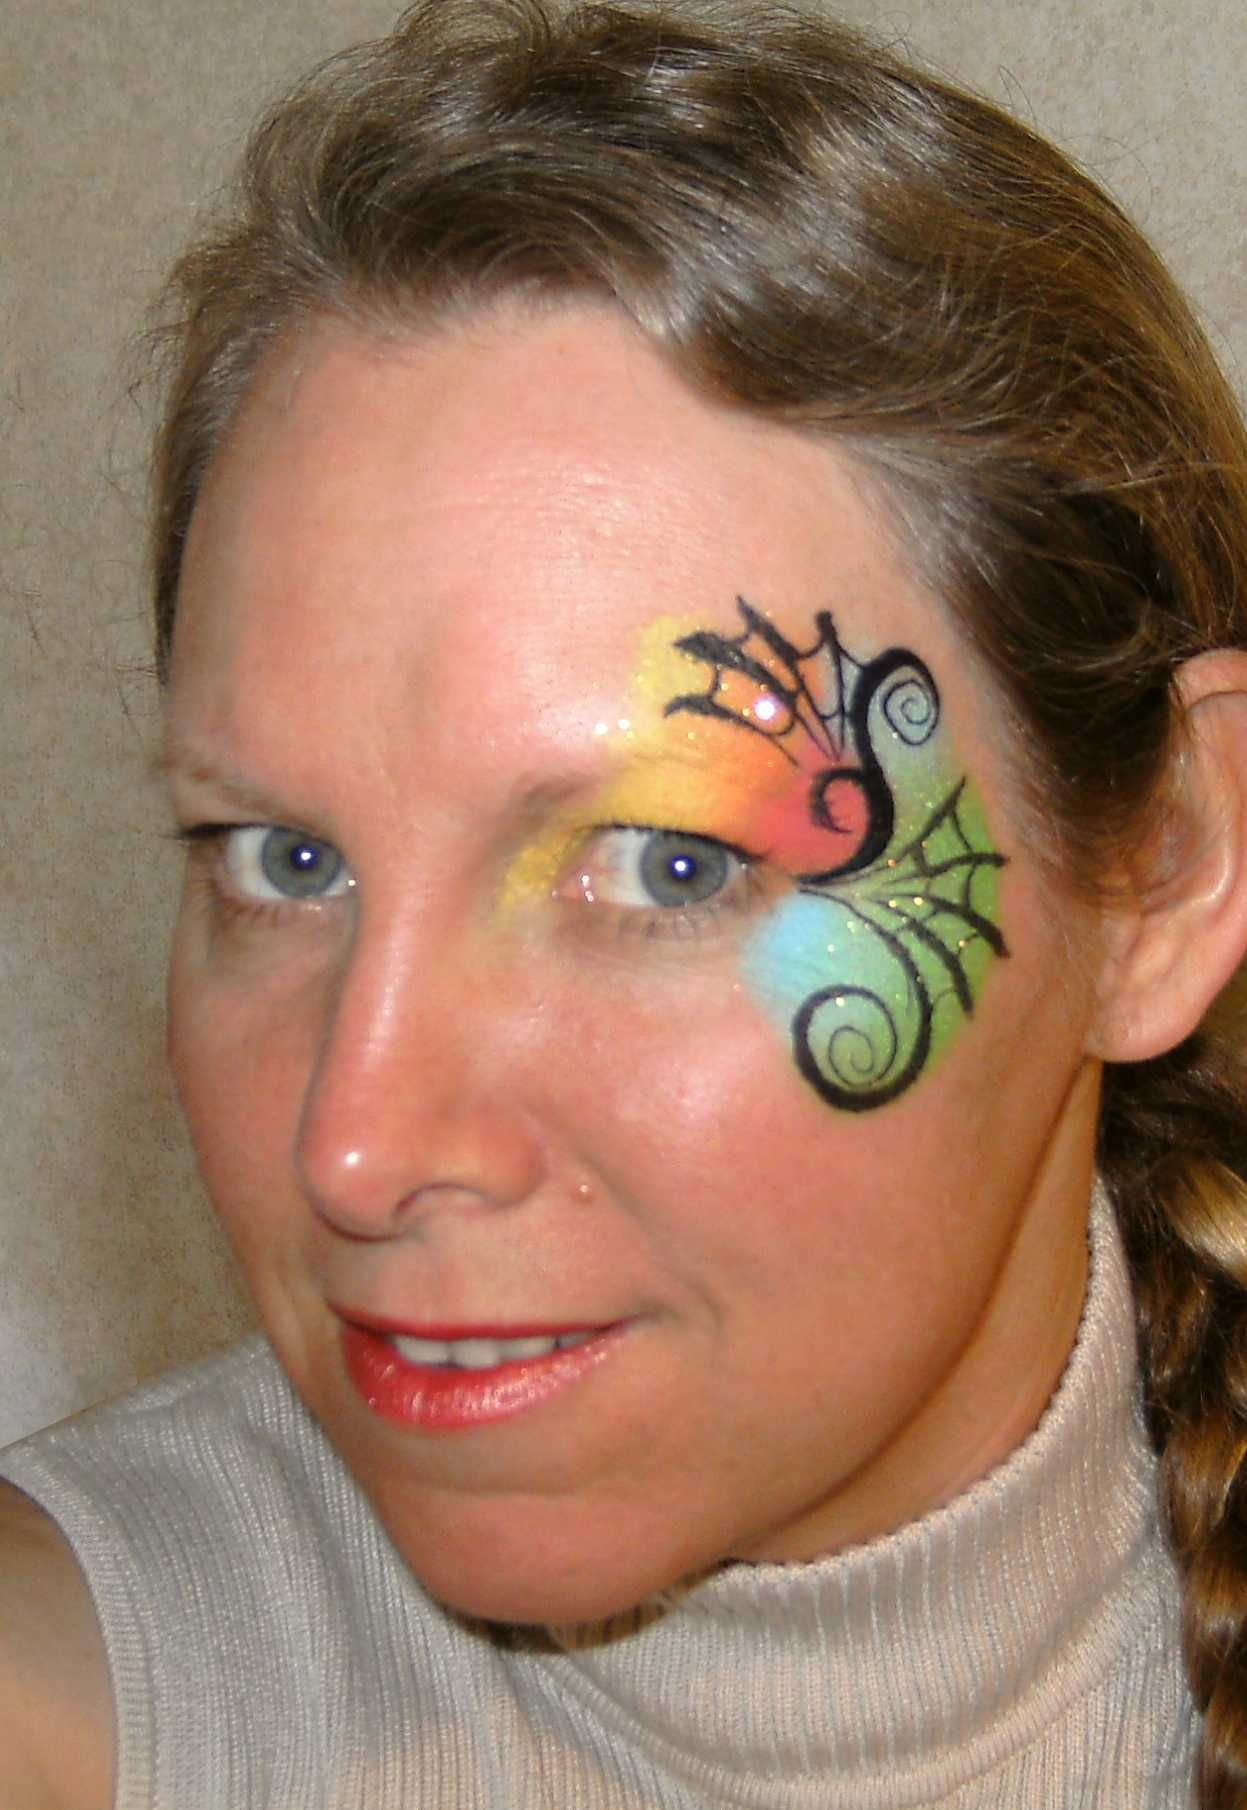 10 more face painting ideas to inspire your halloween - Halloween Face Paint Ideas For Children